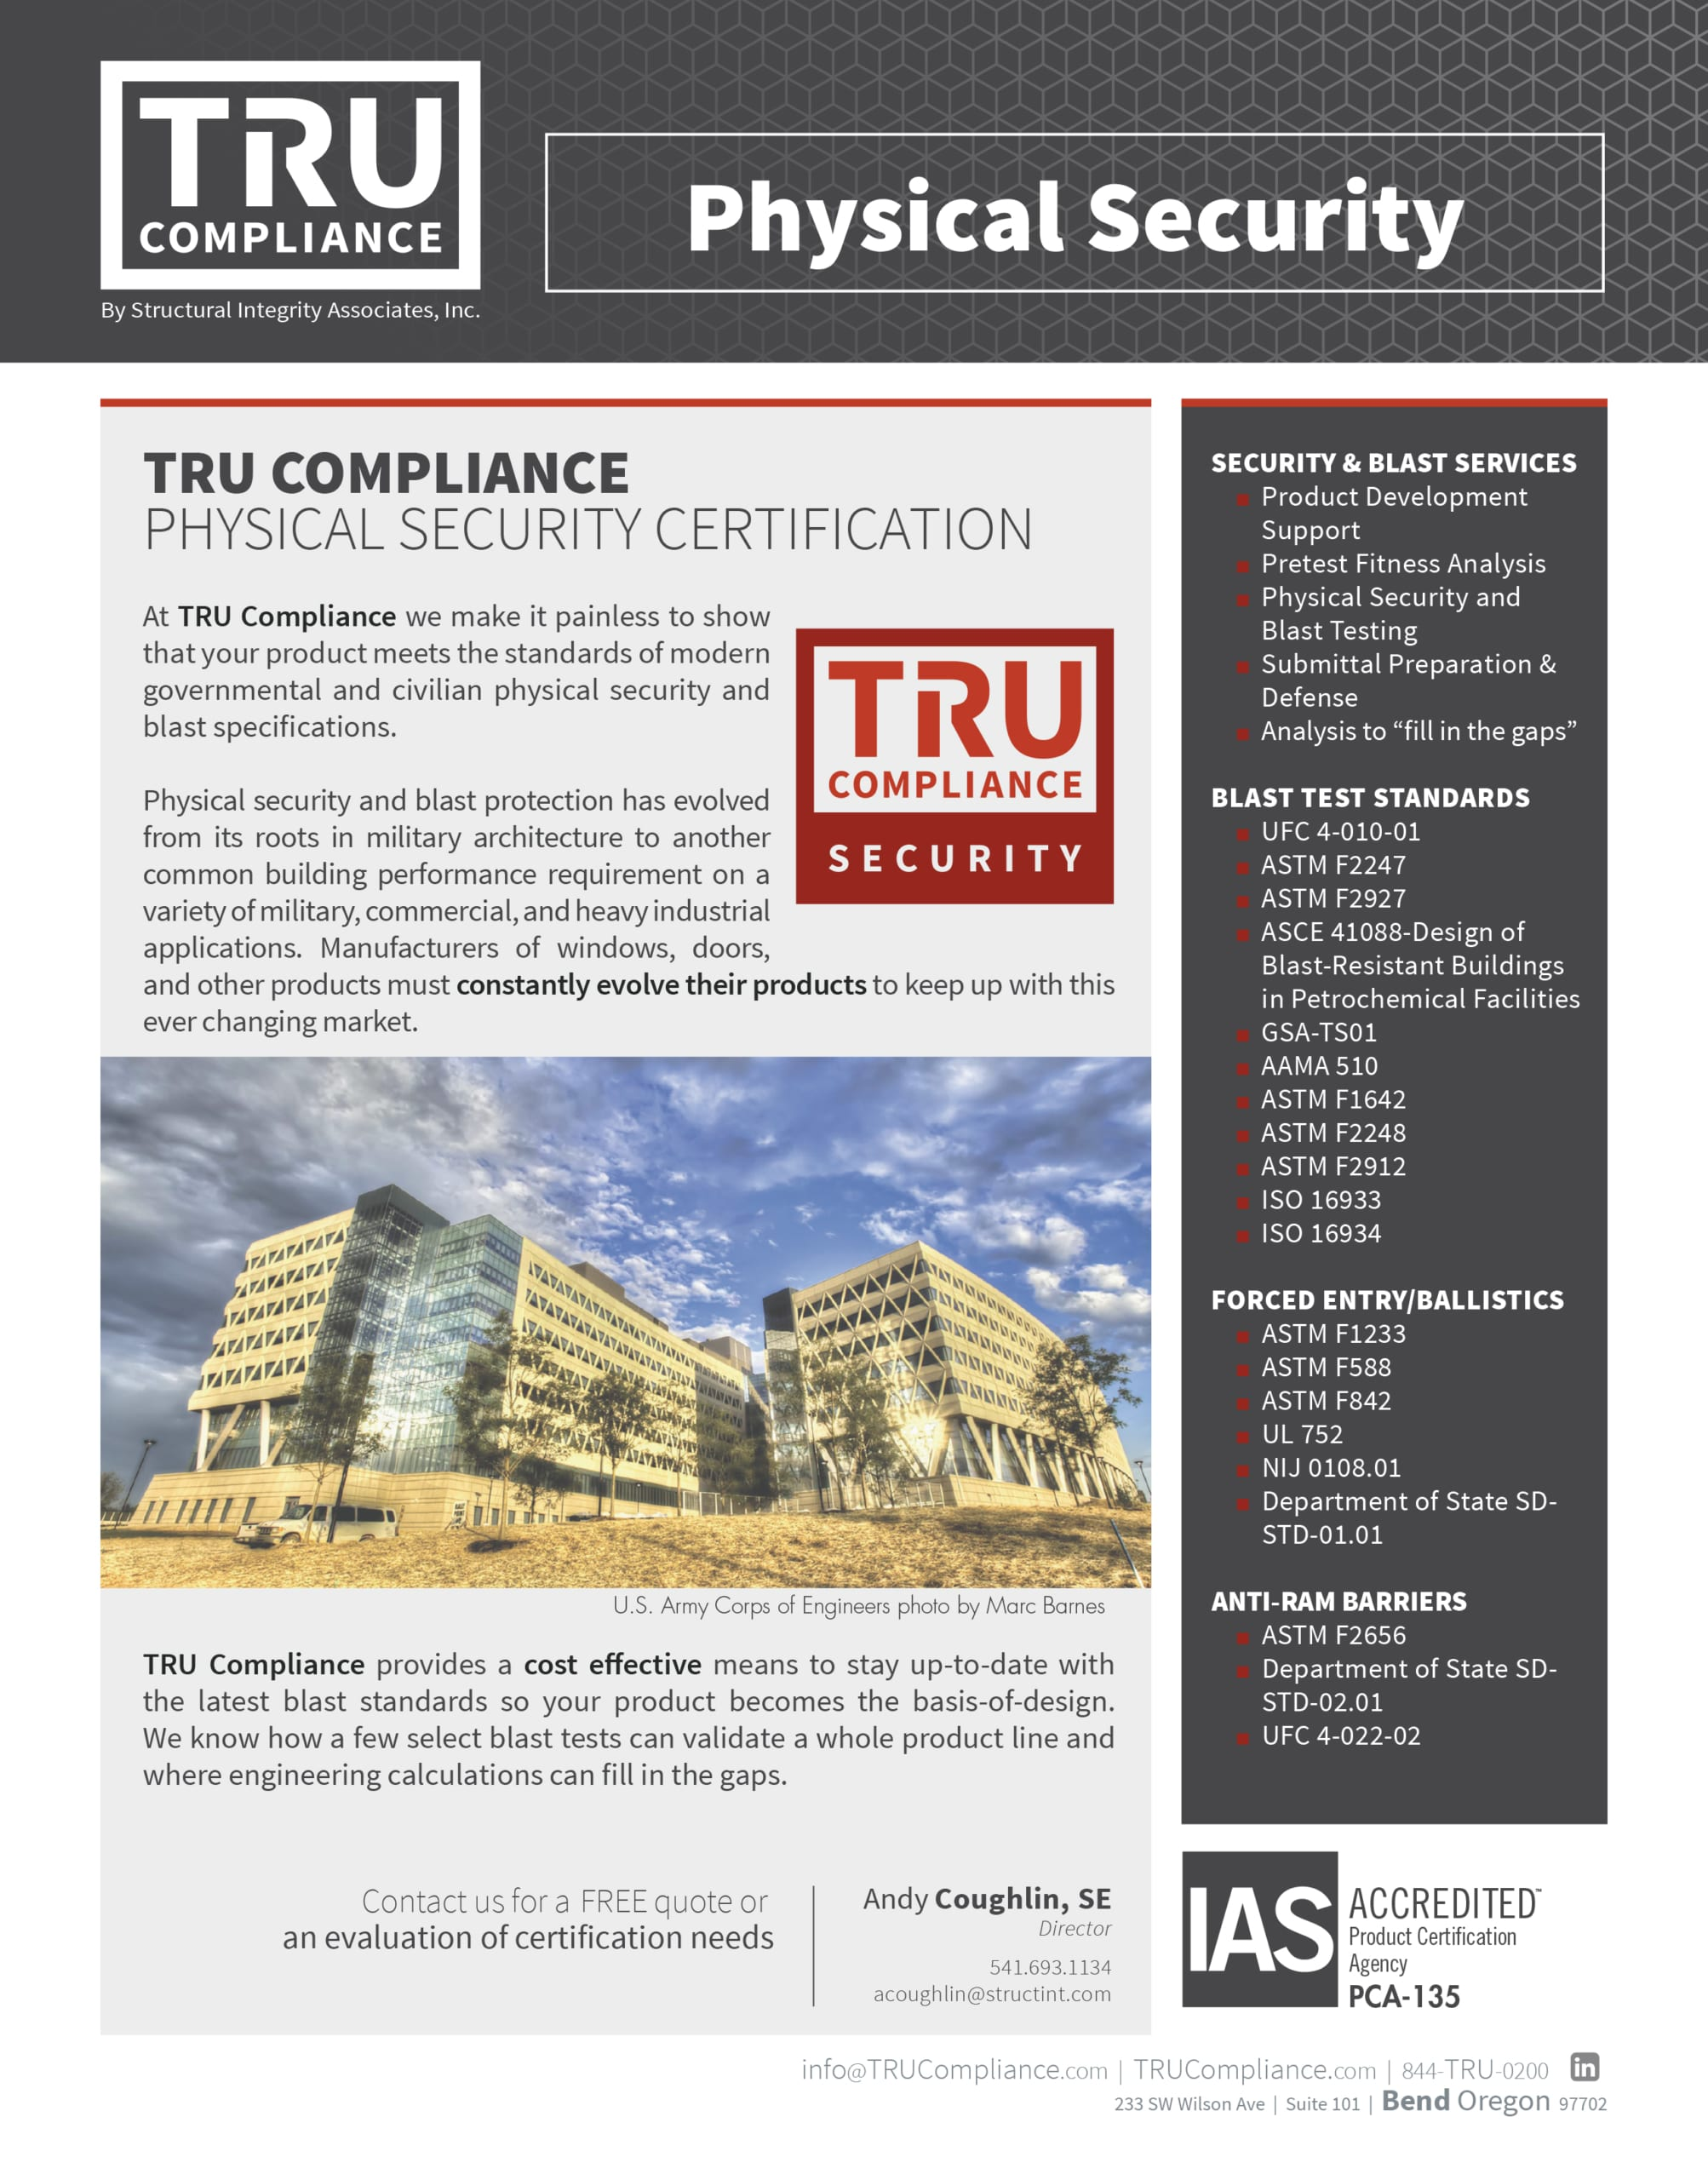 TRU Compliance | Physical Security Certification